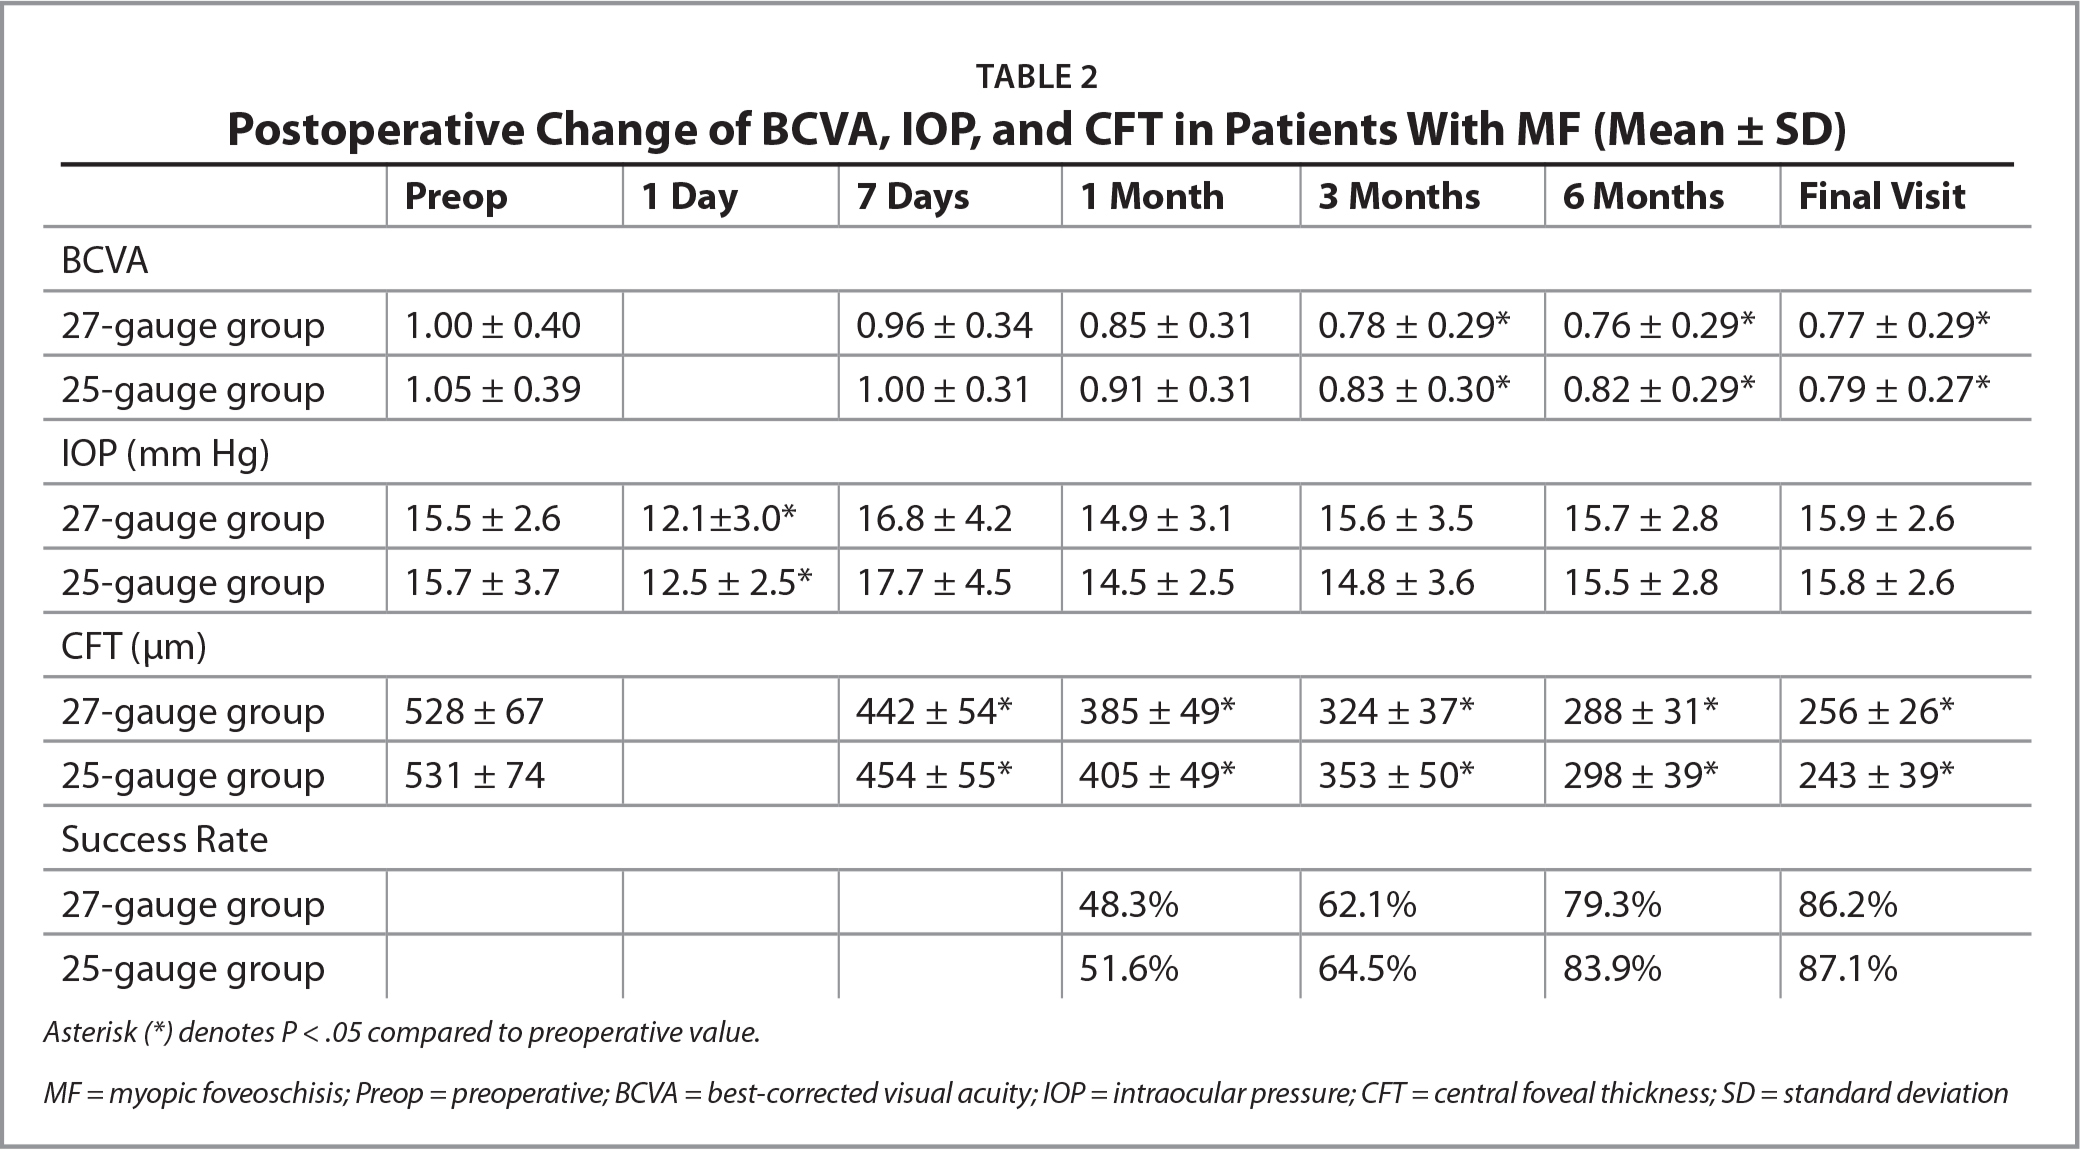 Postoperative Change of BCVA, IOP, and CFT in Patients With MF (Mean ± SD)